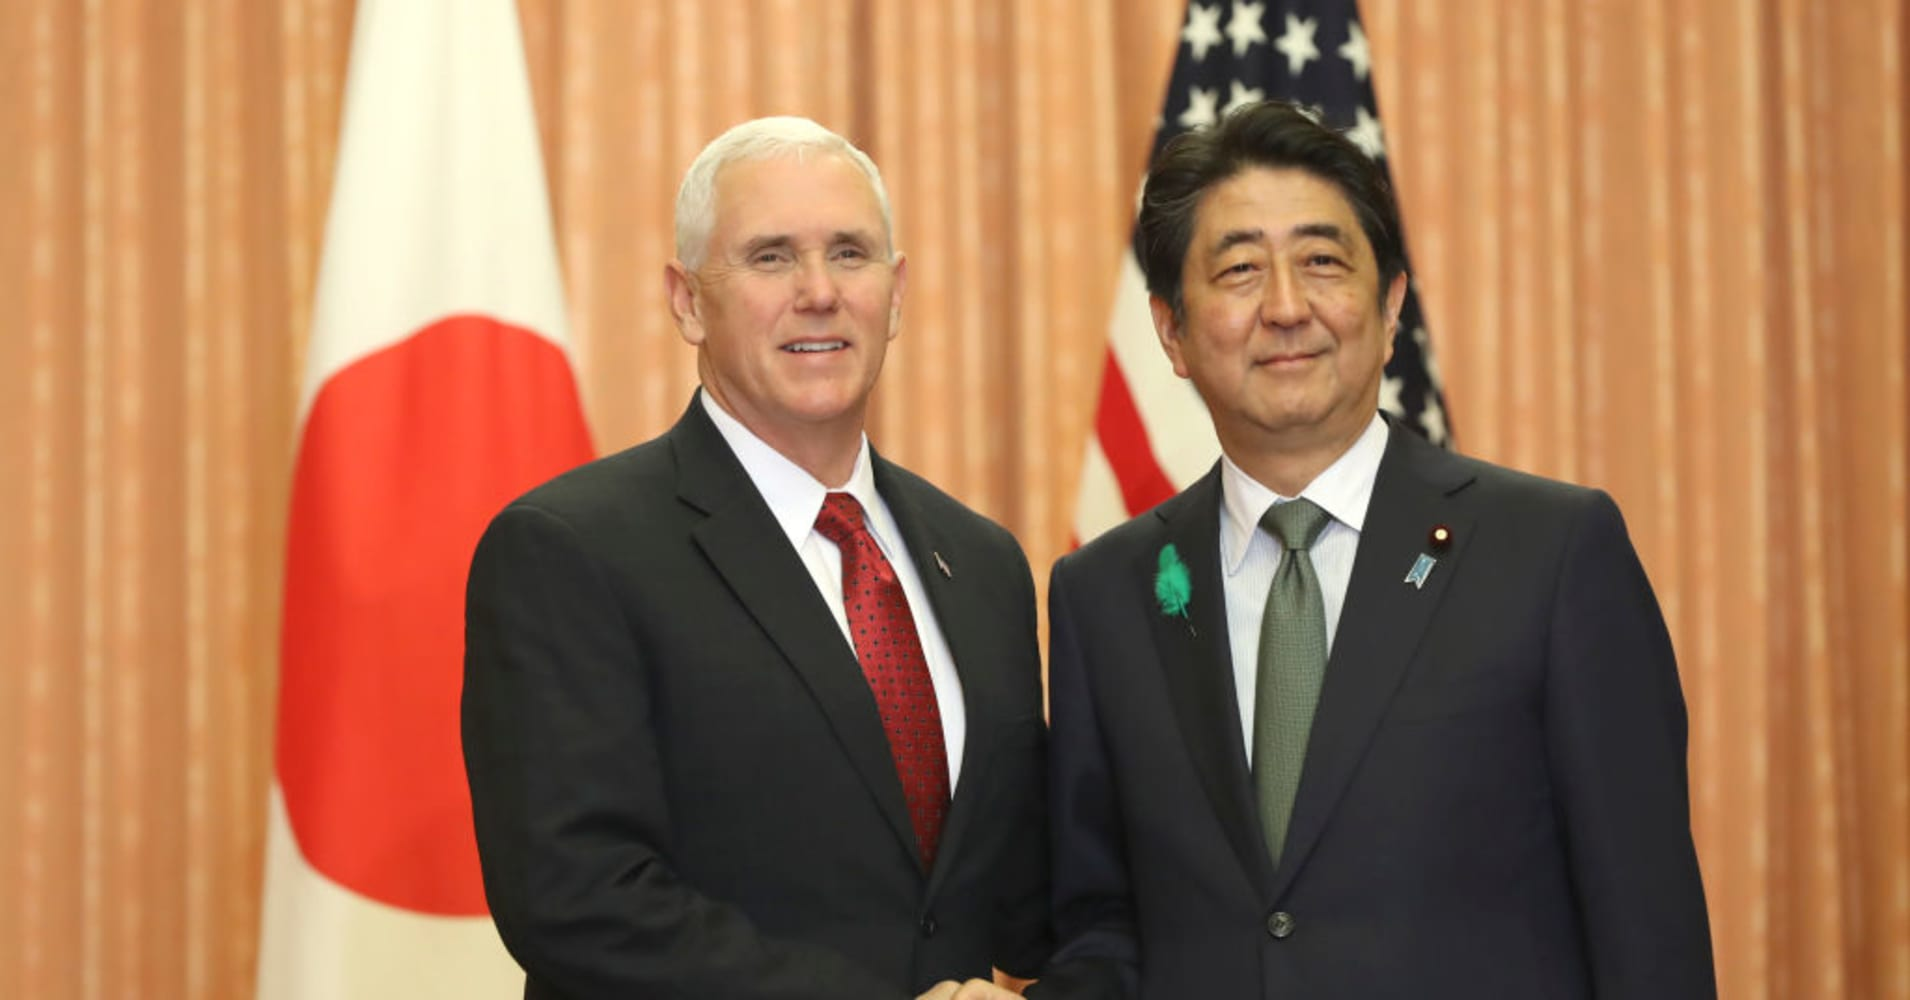 Pence says US will work with Japan, allies to find peaceful North Korea solution